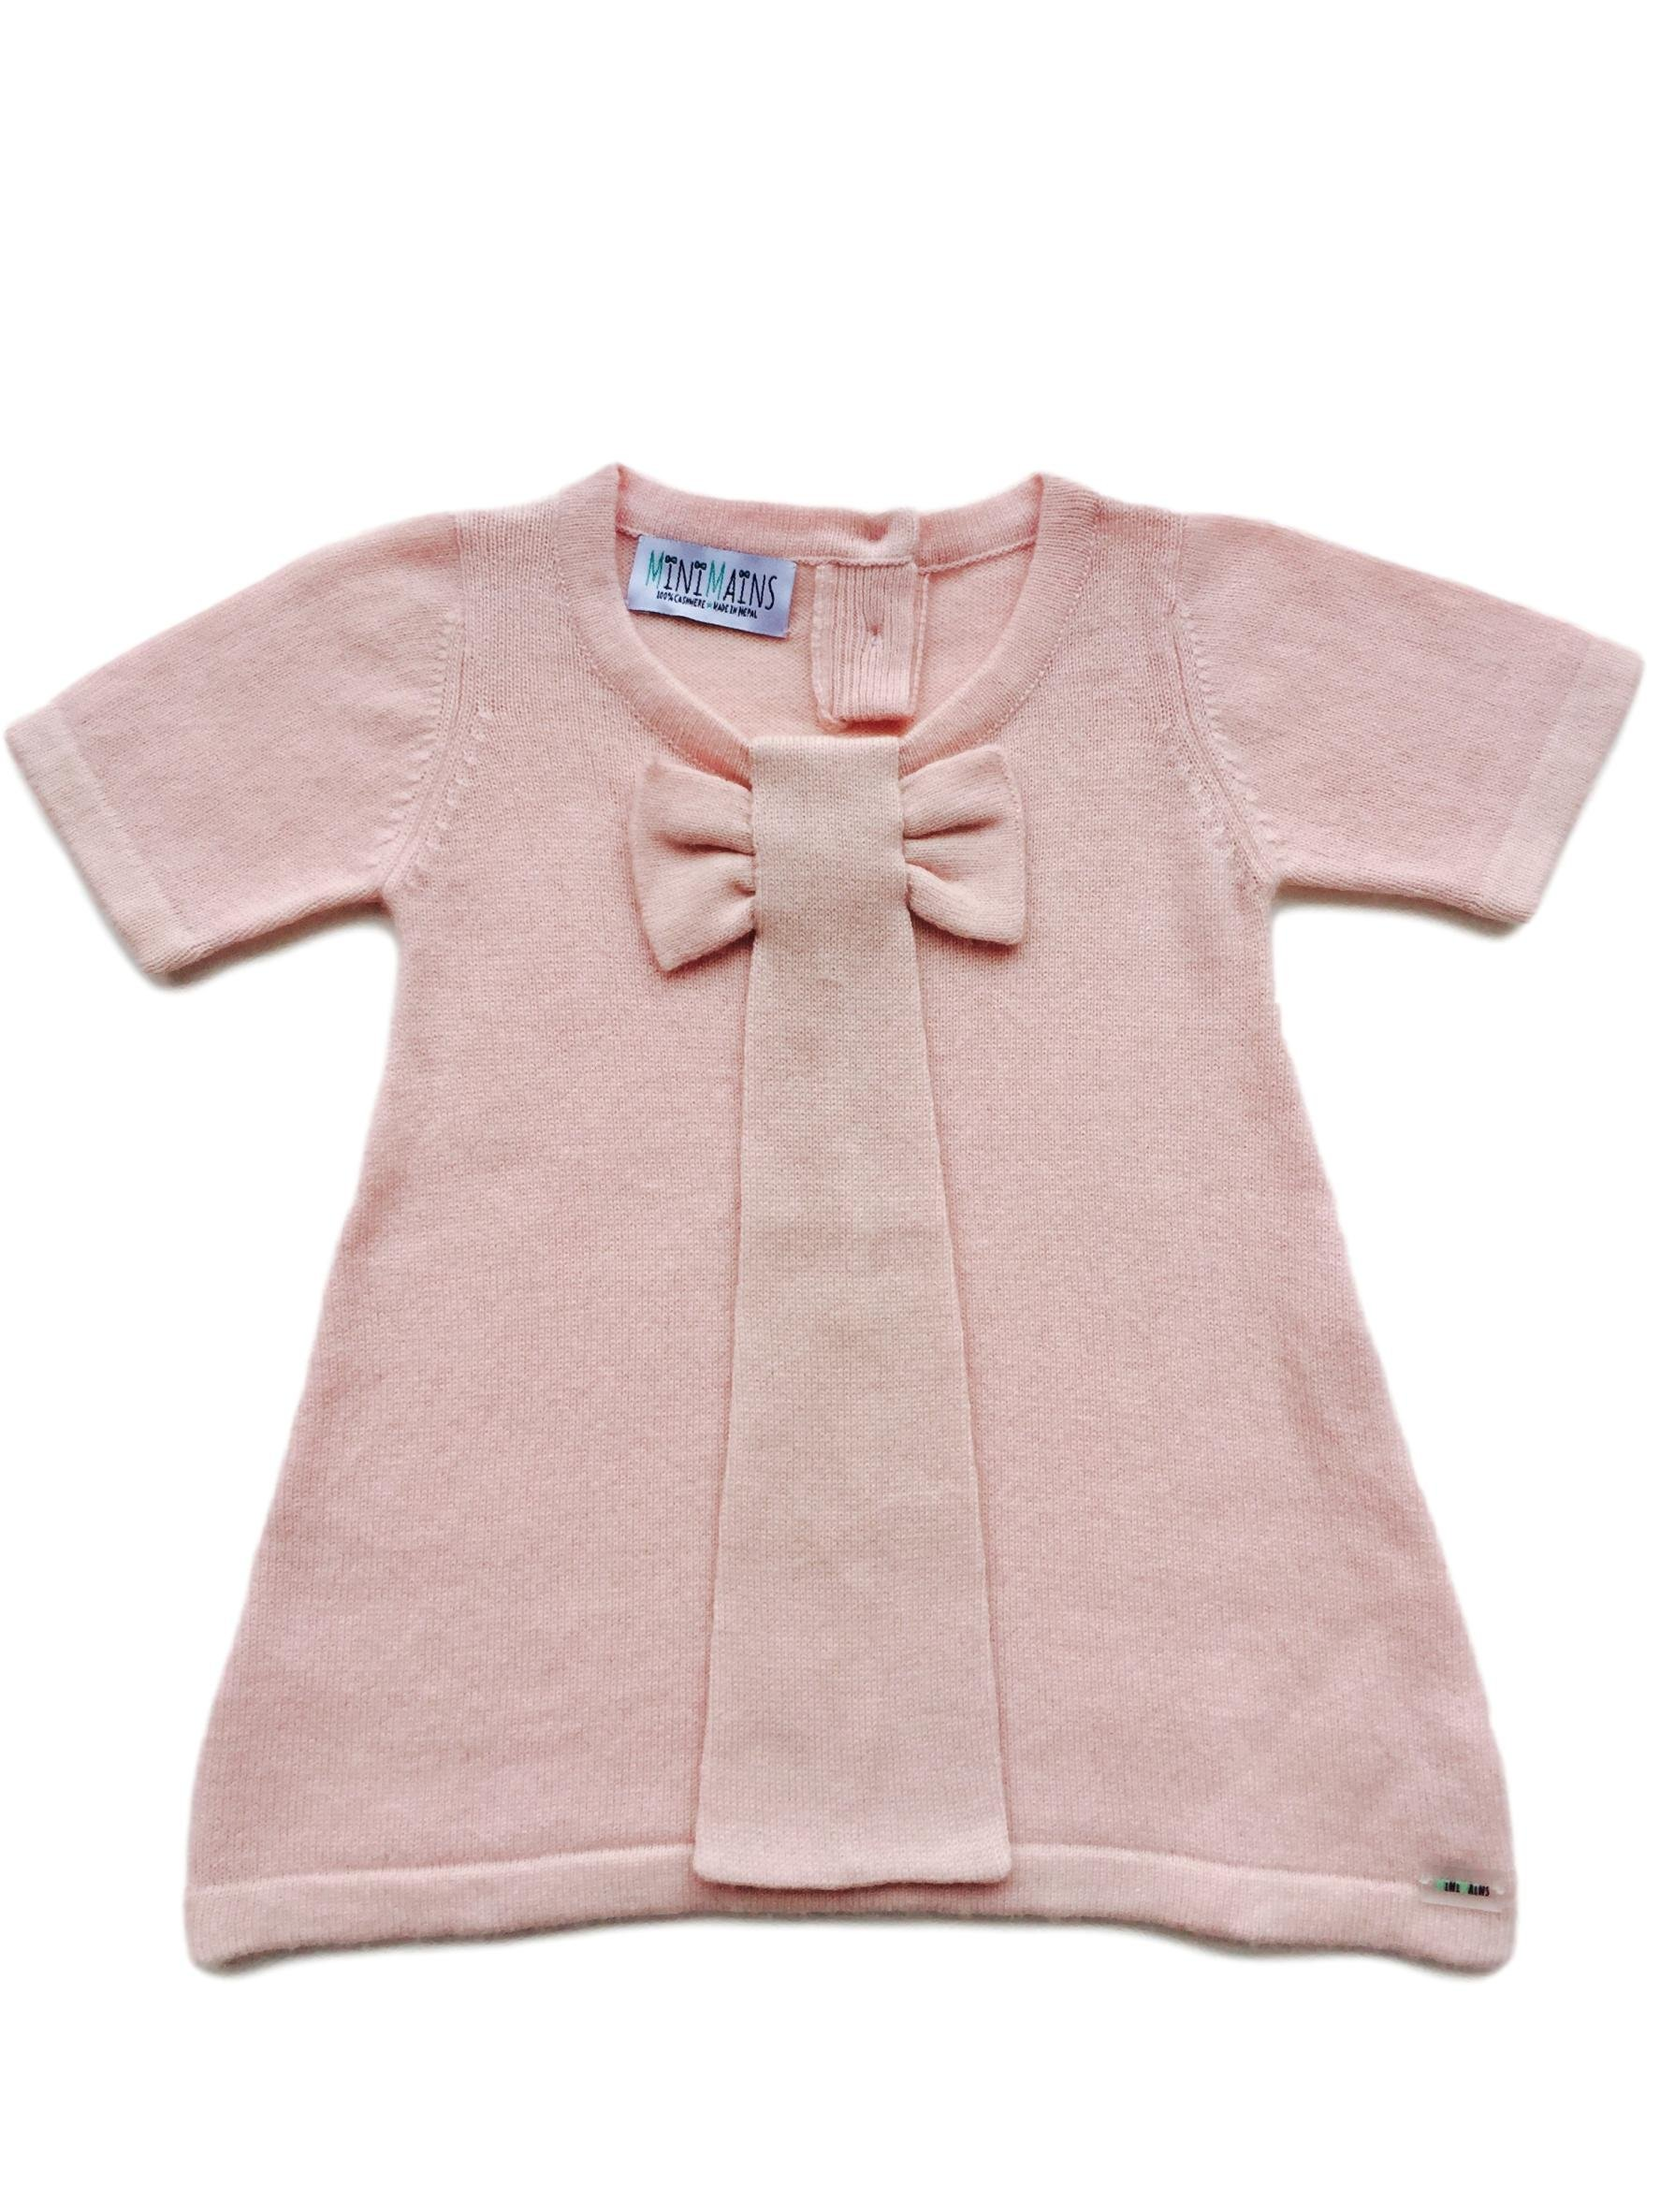 Minimains Little Girls' Pure Cashmere Lightweight Dress With Bow 2y Pink